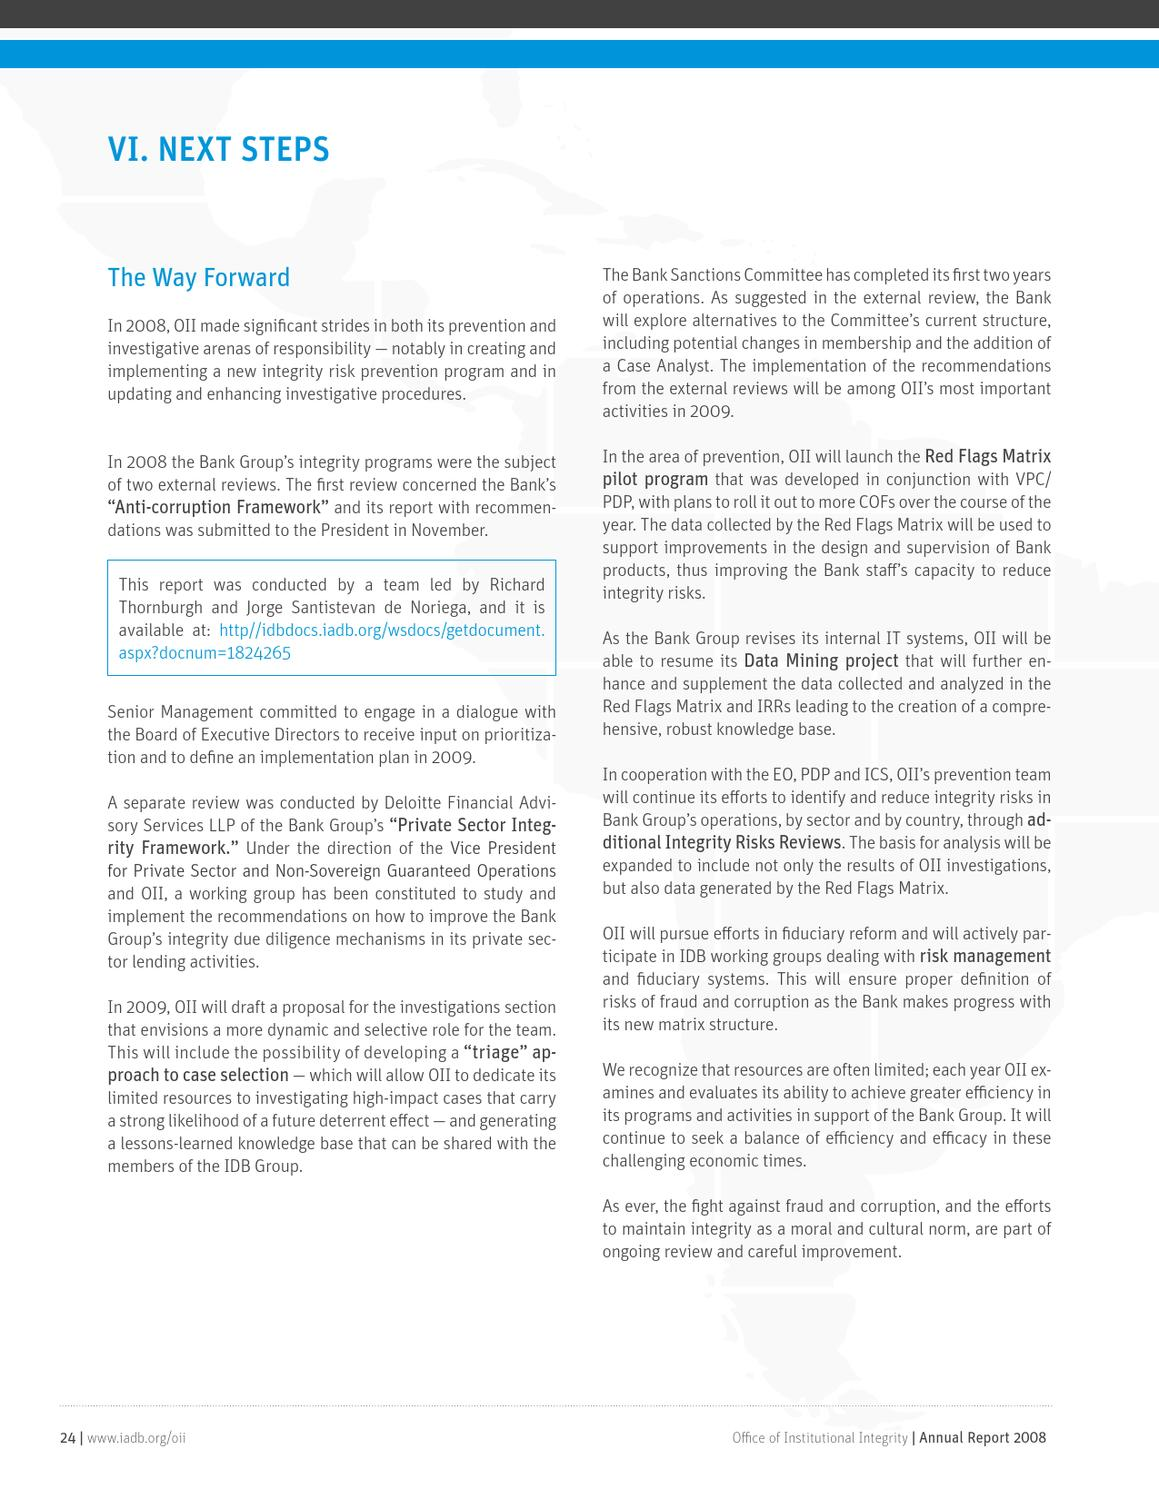 office of institutional integrity annual report 2008 by IDB - issuu